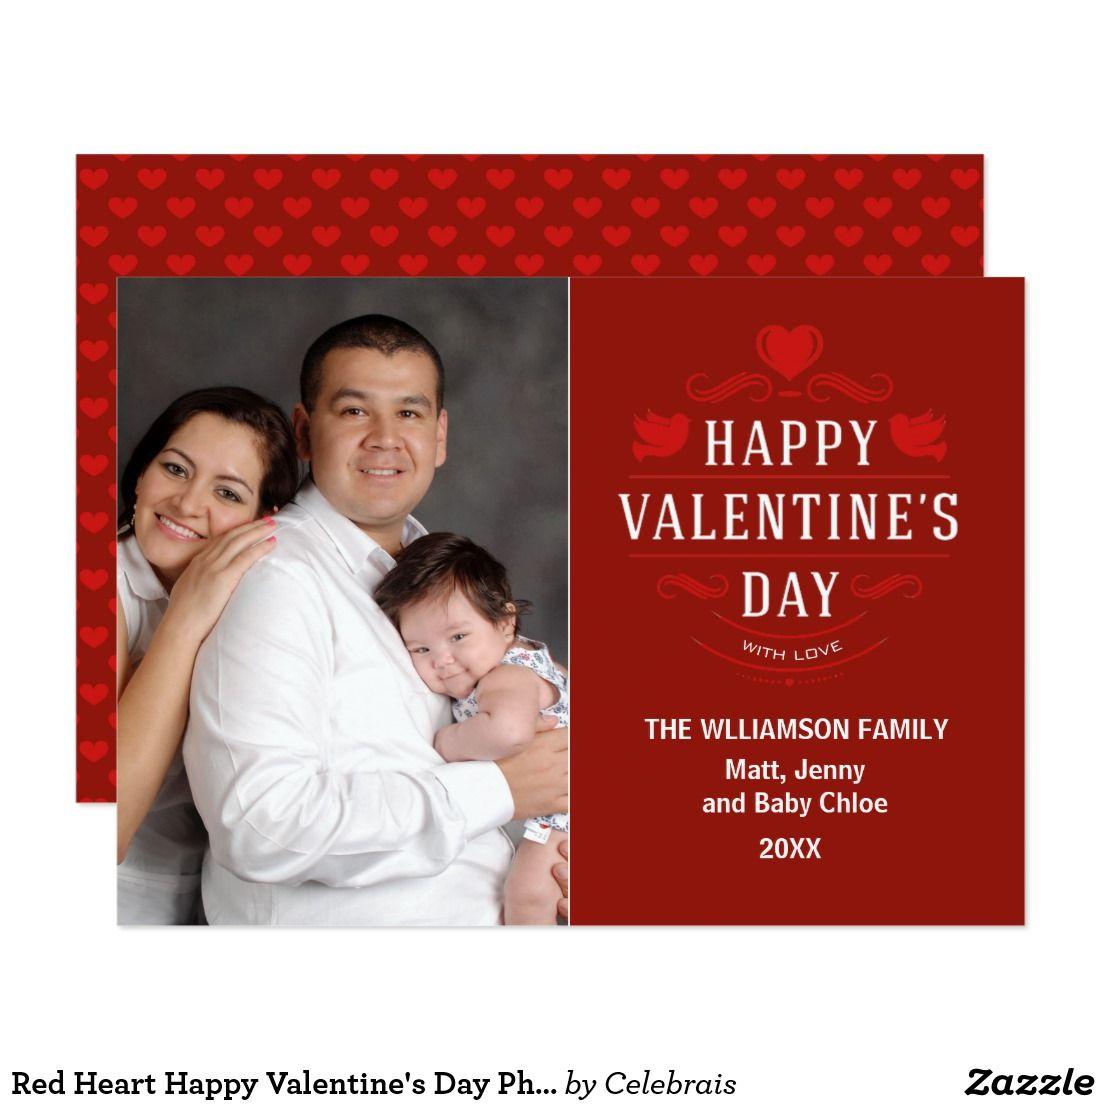 Red heart happy valentines day photo card